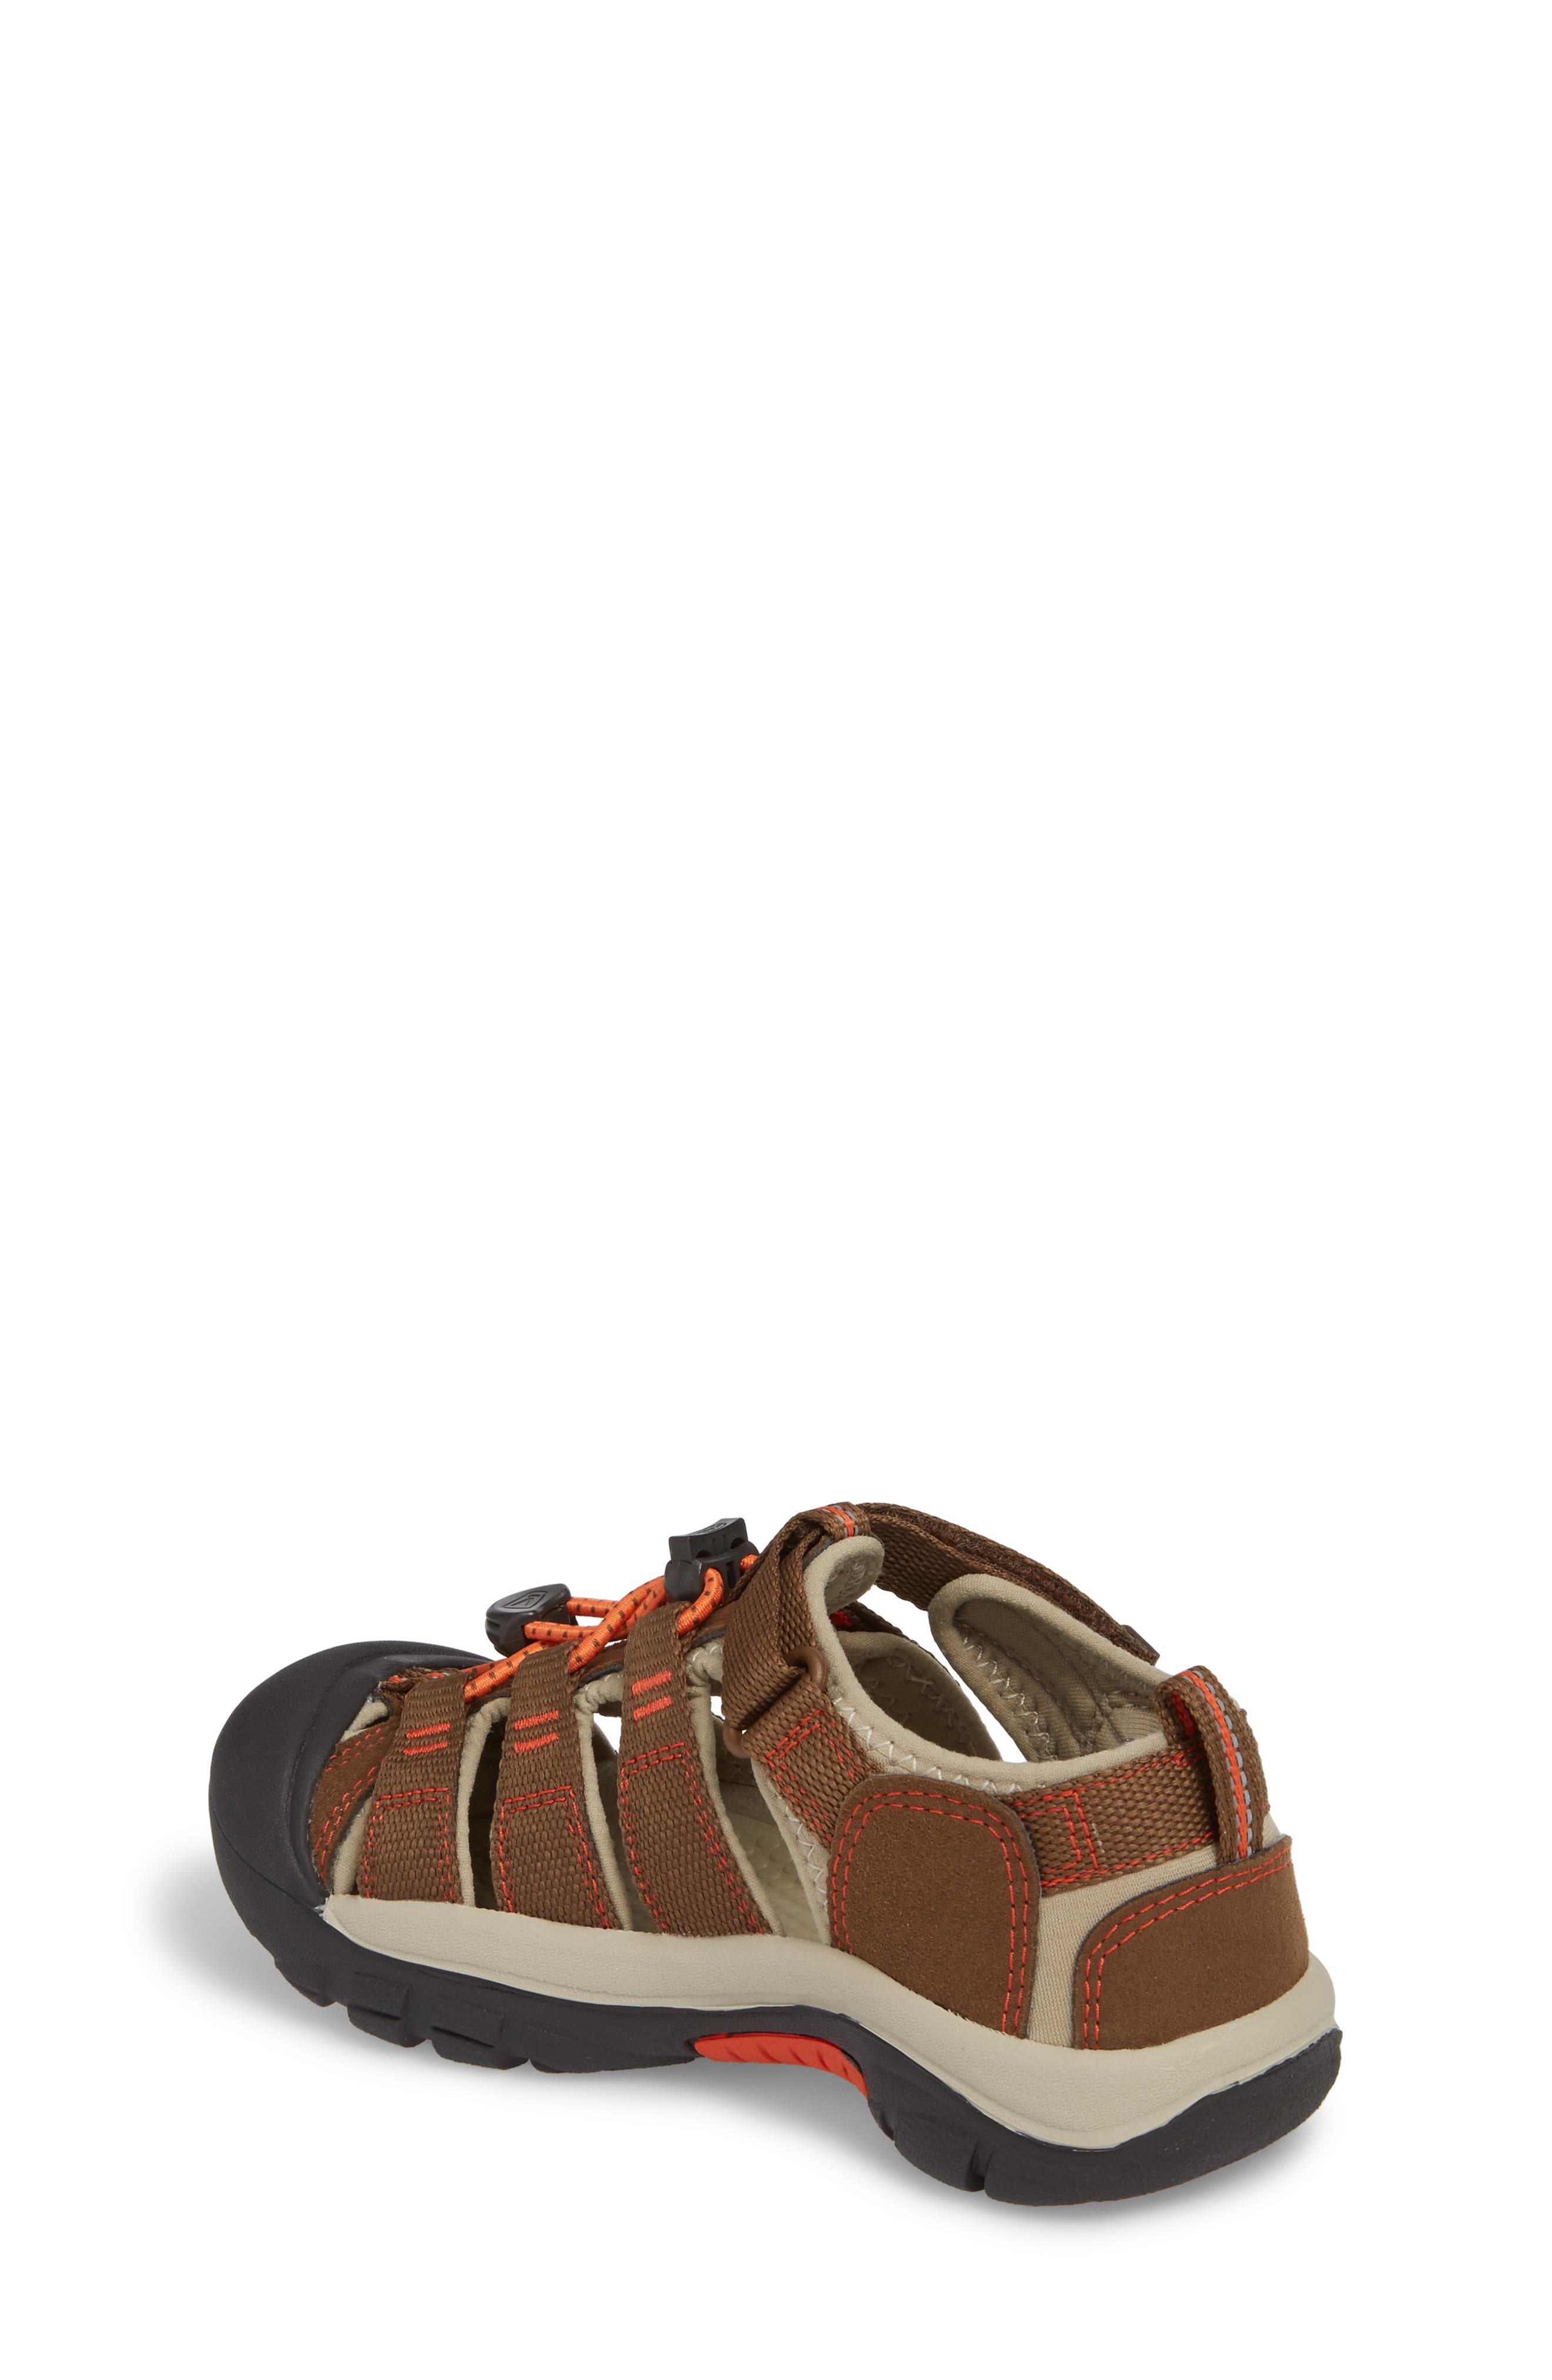 'Newport H2' Water Friendly Sandal,                             Alternate thumbnail 2, color,                             DARK EARTH/ SPICY ORANGE